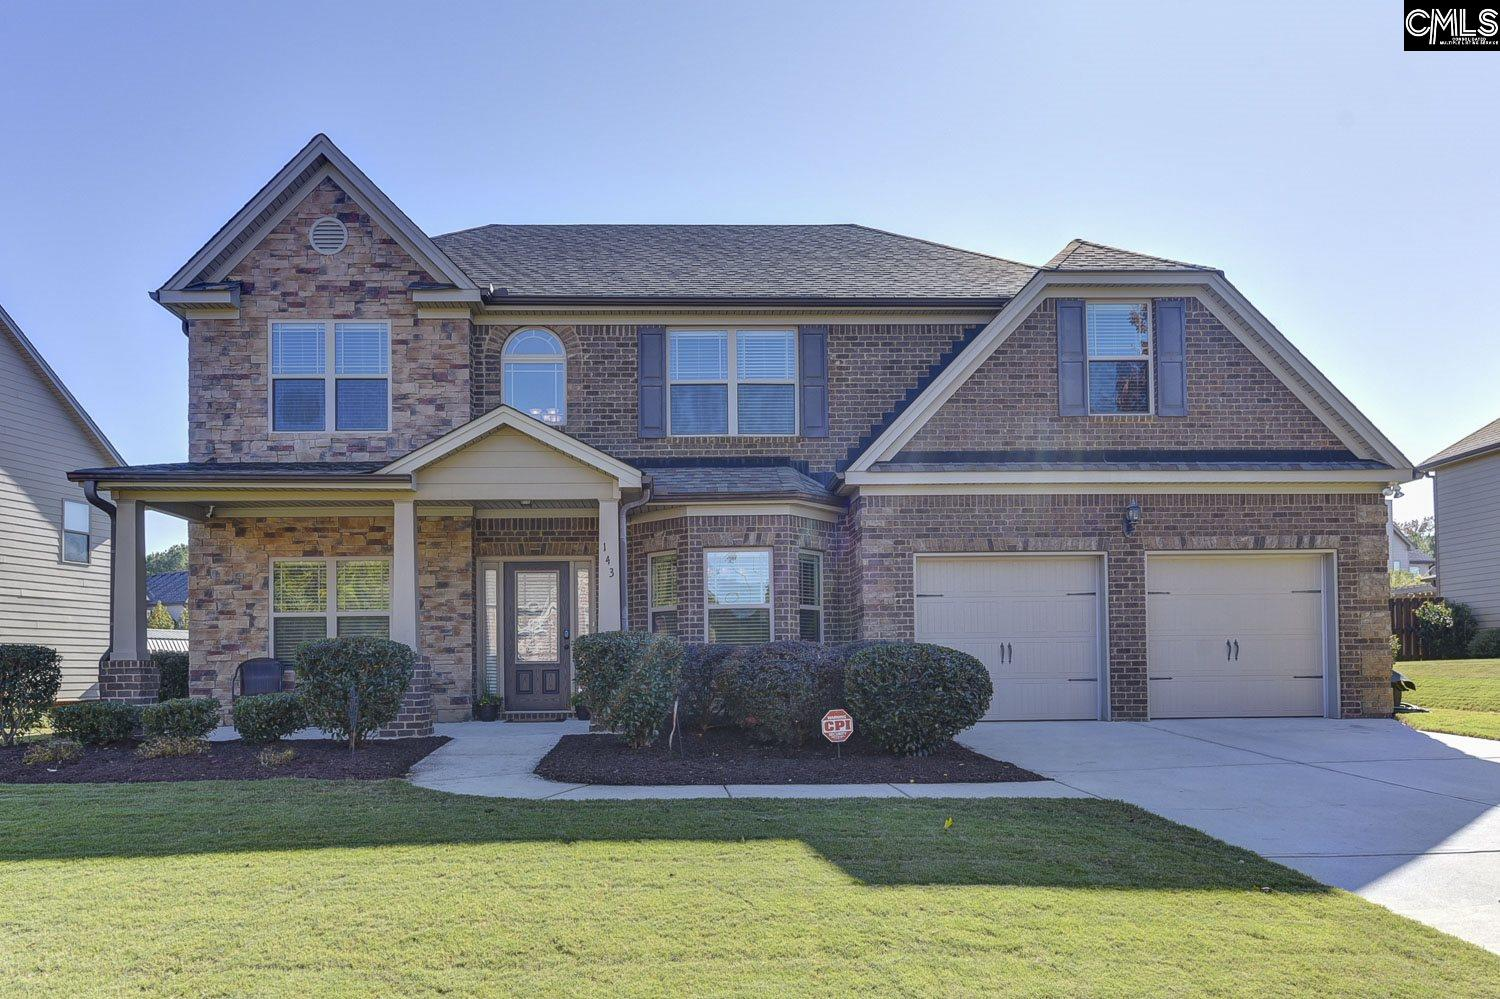 143 White Oleander Dr Lexington, SC 29072